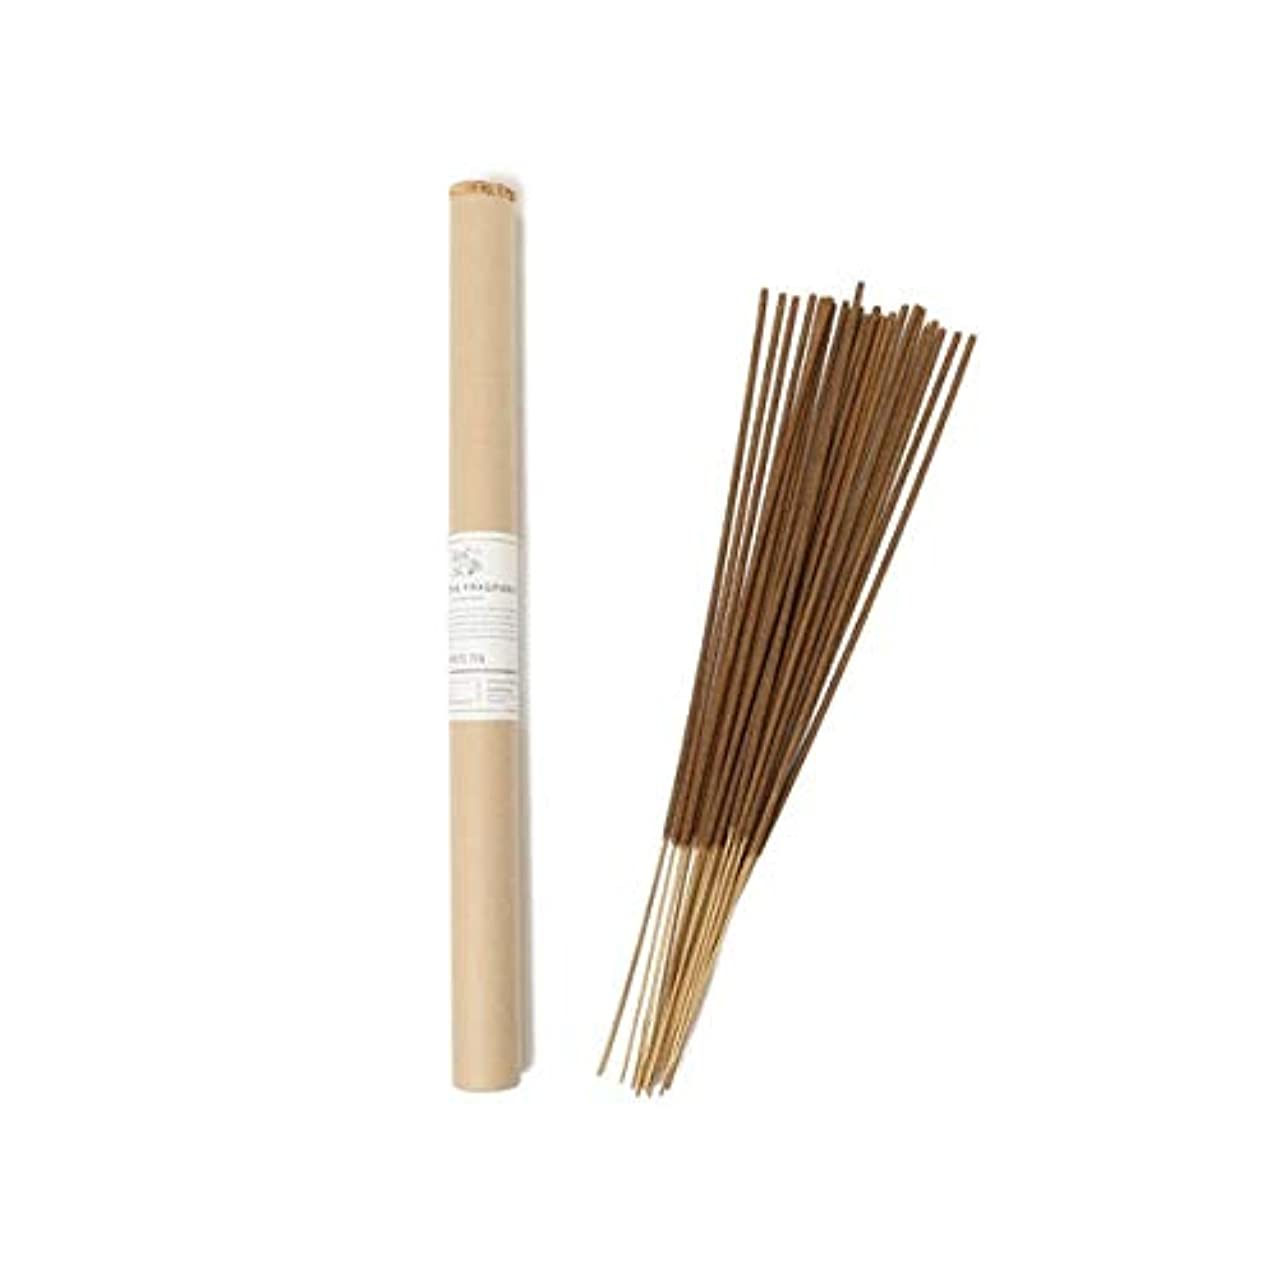 心臓憂慮すべき予約bPrビームス(雑貨)(bprbeams) APOTHEKE FRAGRANCE/INCENSE STICKS (お香)